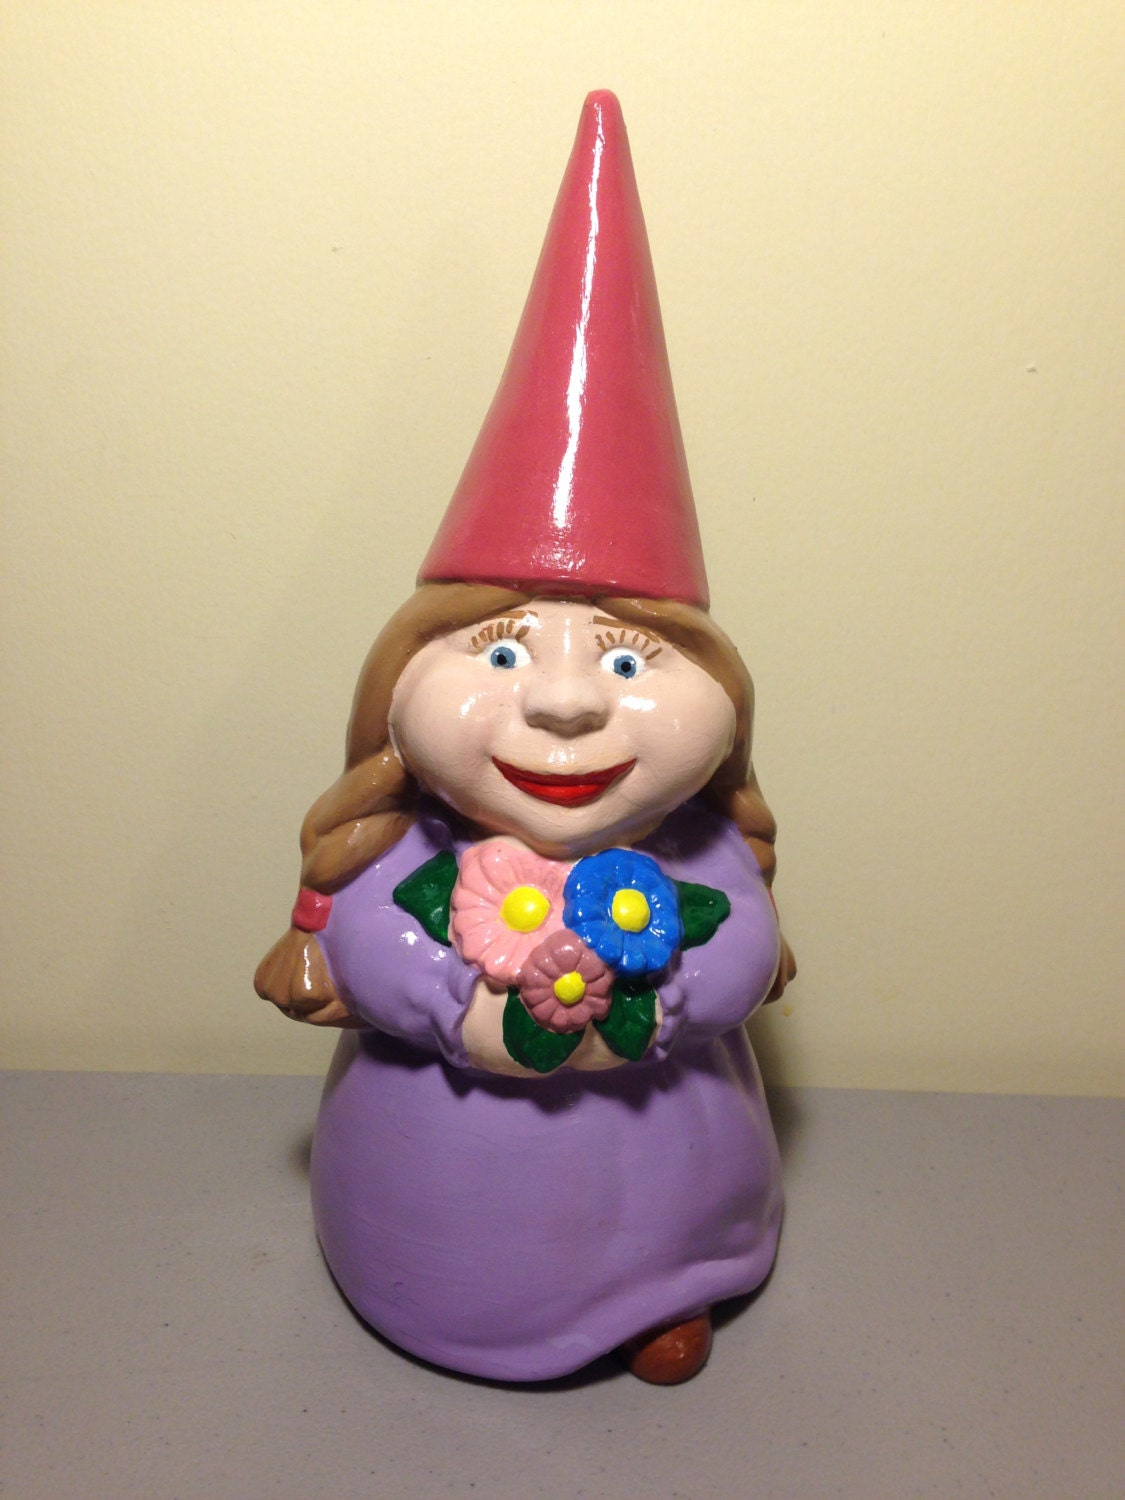 Gnome In Garden: Large Ceramic Female Gnome Statue